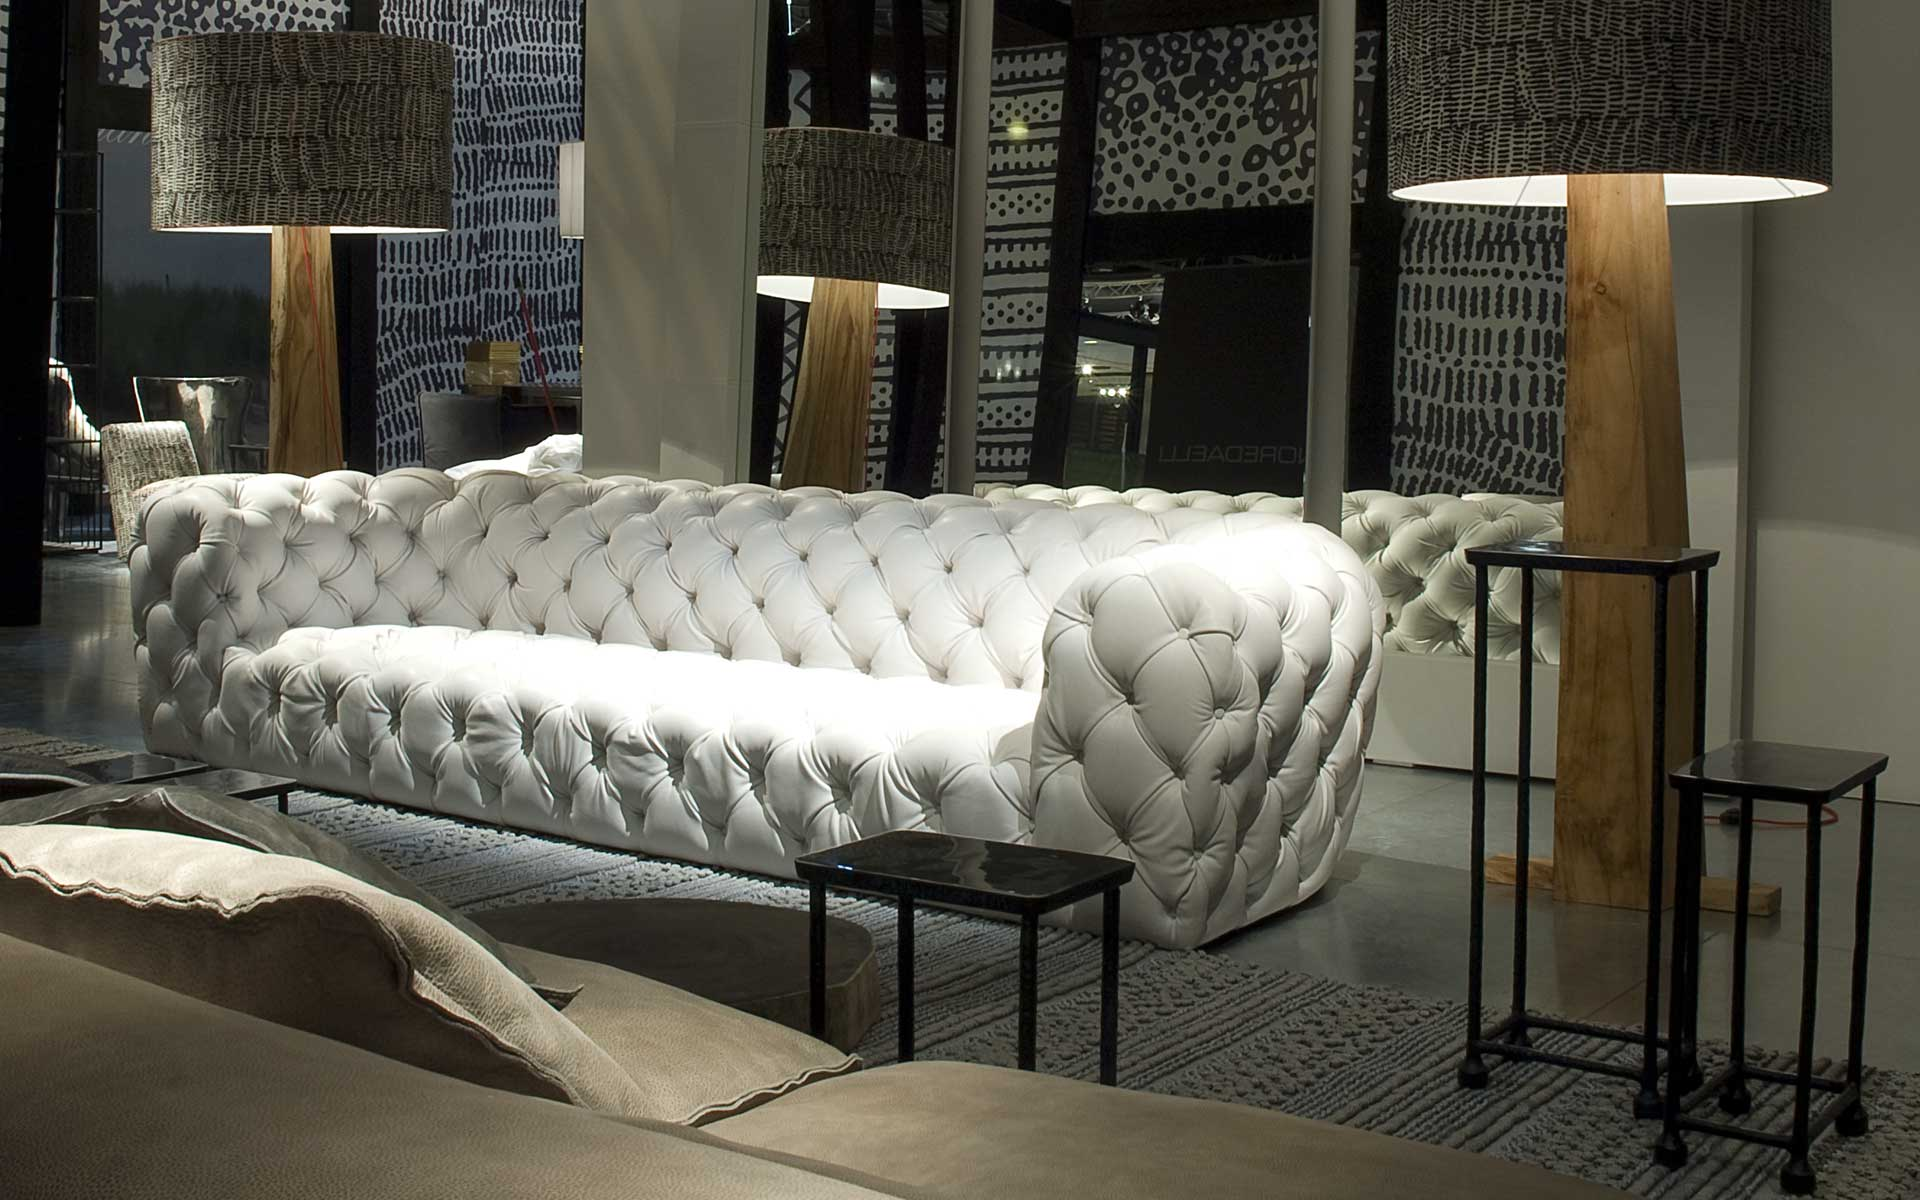 Baxter from italy brings fine sofas home interior design - Canape chesterfield velour ...